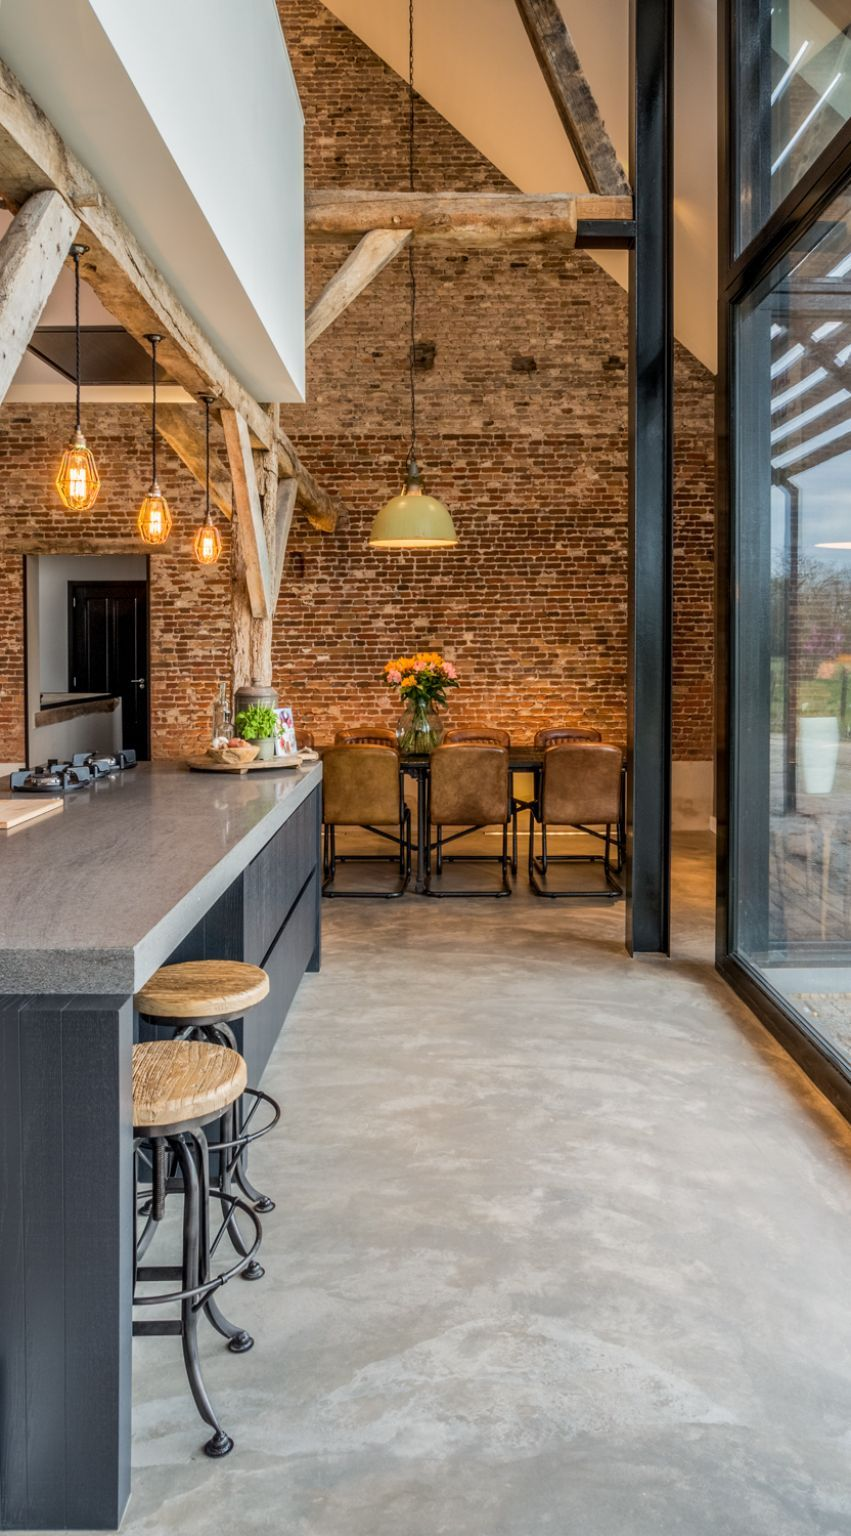 The concrete floor adds an industrial vibe to the house and also gives it a modern feel